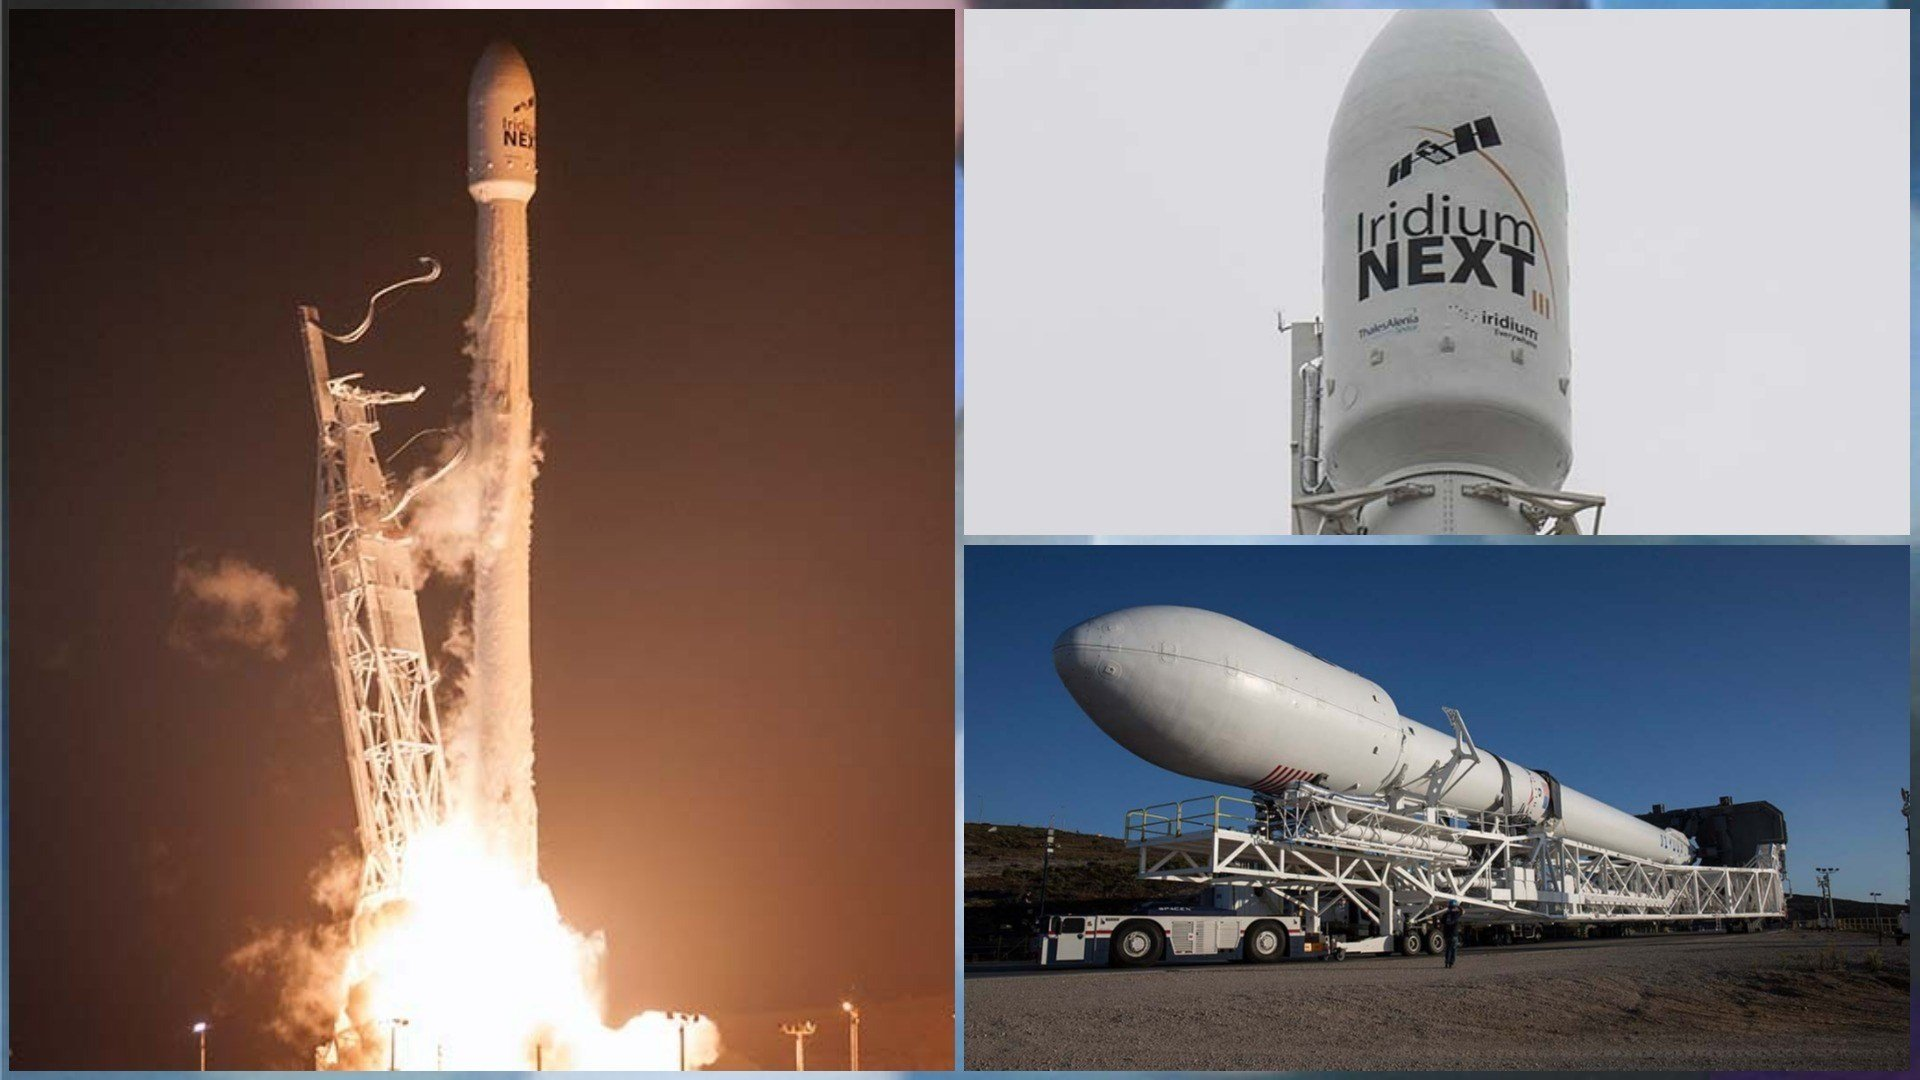 (Source: SpaceX)